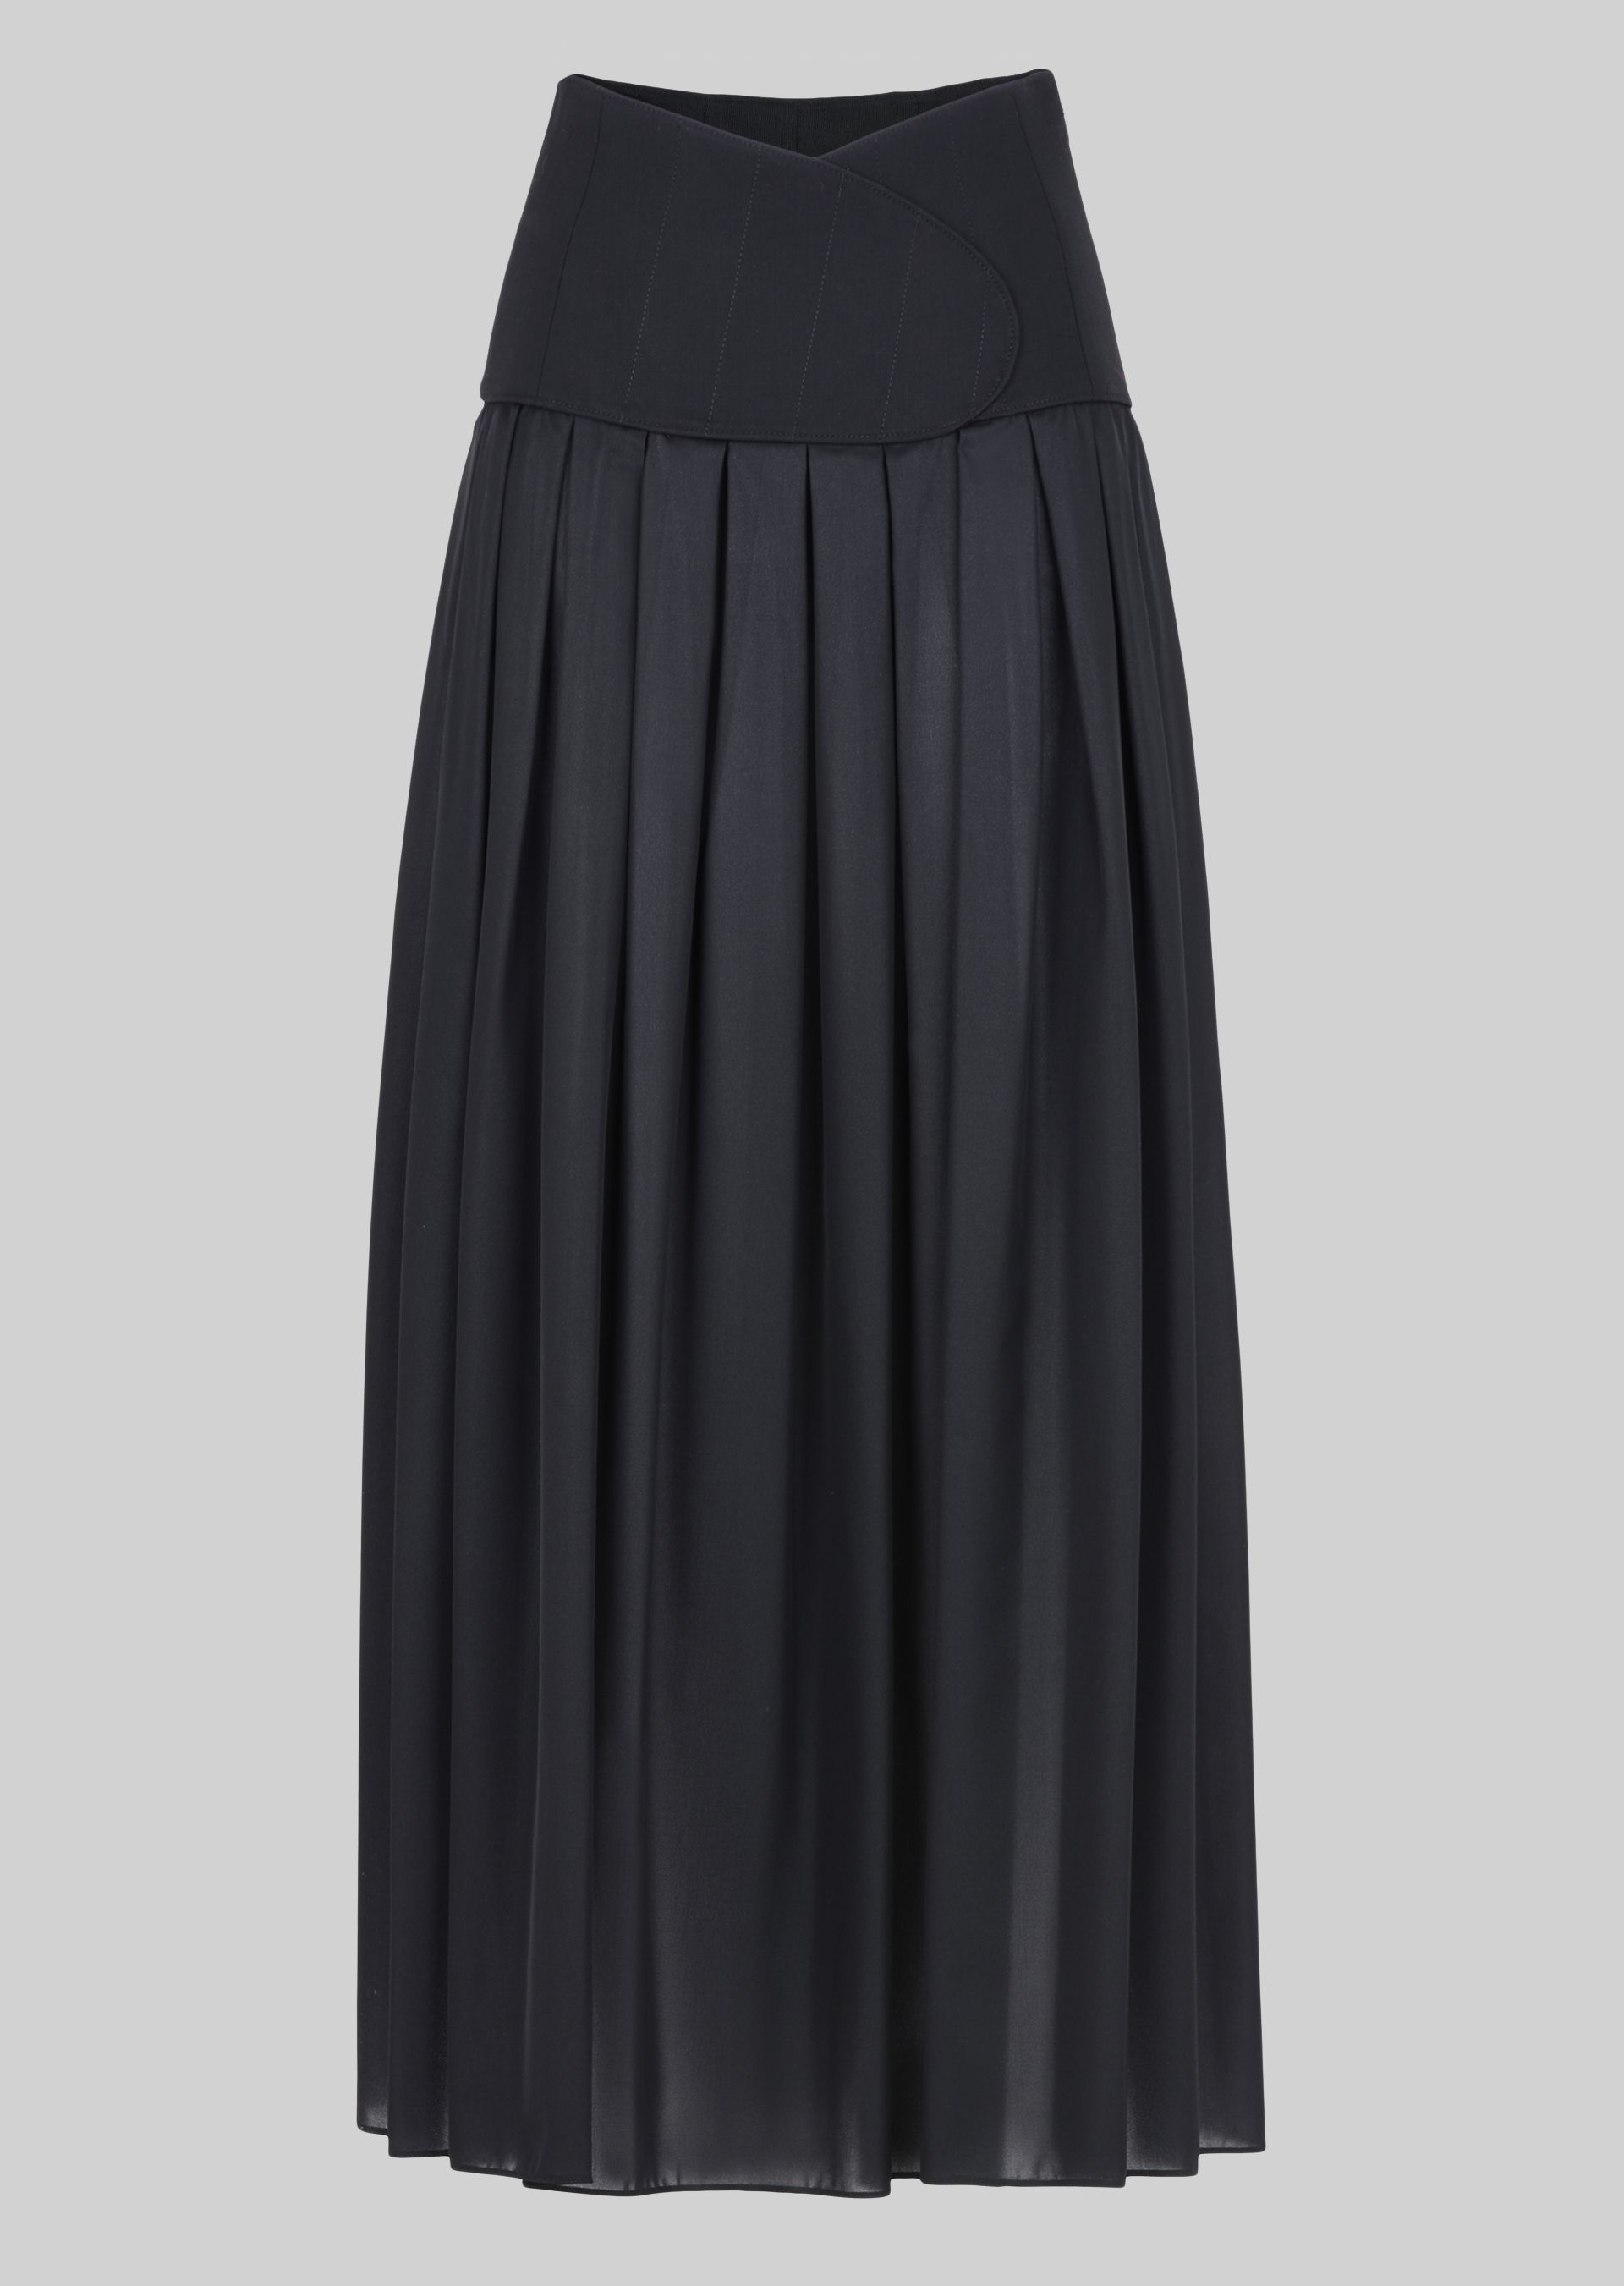 GIORGIO ARMANI LONG SKIRT IN TECHNICAL CRÊPE DE CHINE. Skirt D r